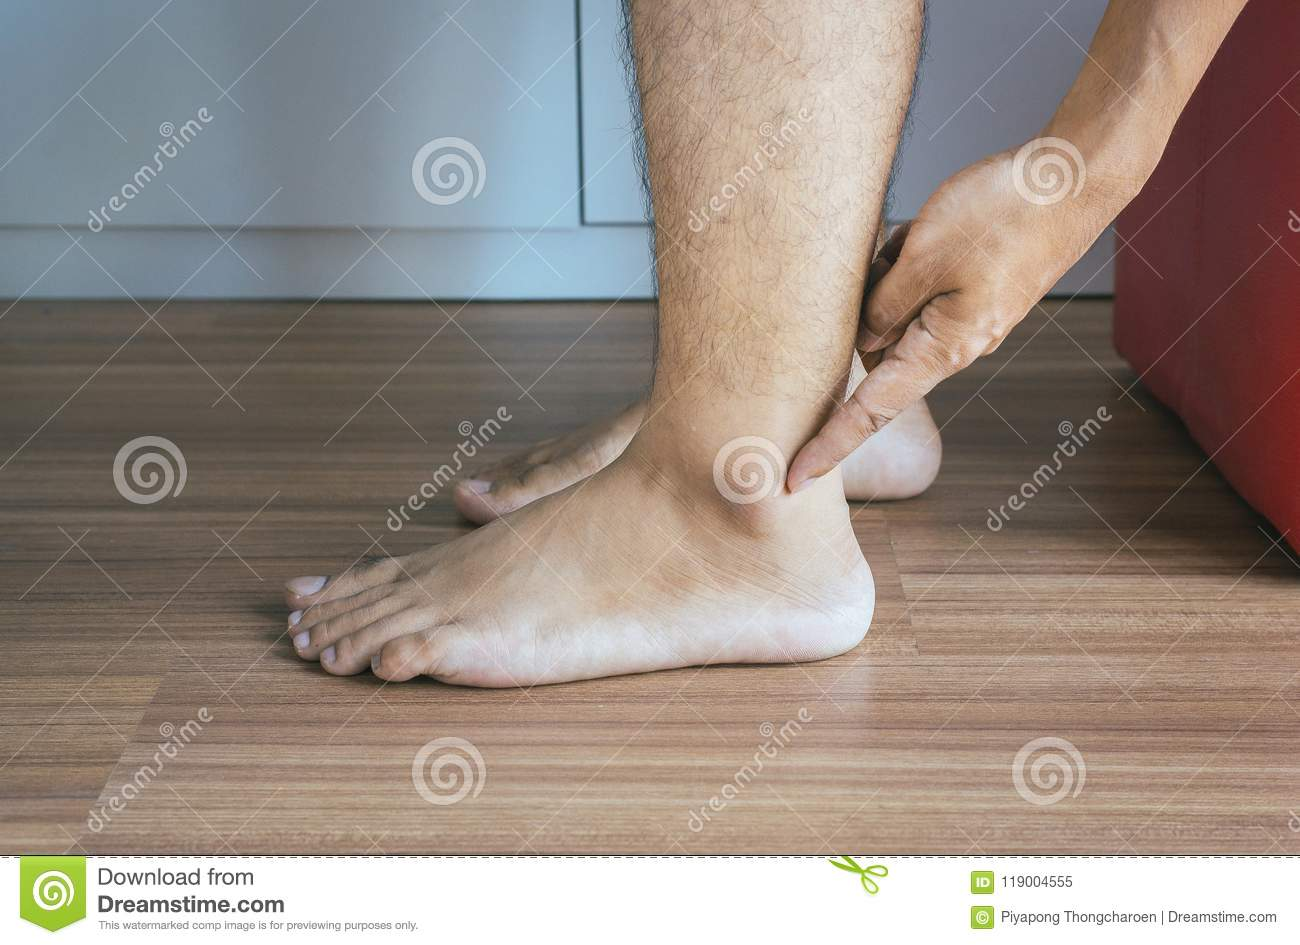 Man Dry Skin Or Pigmentation On Feet Or Foot With Ankleboneclose Upskin Health Concept